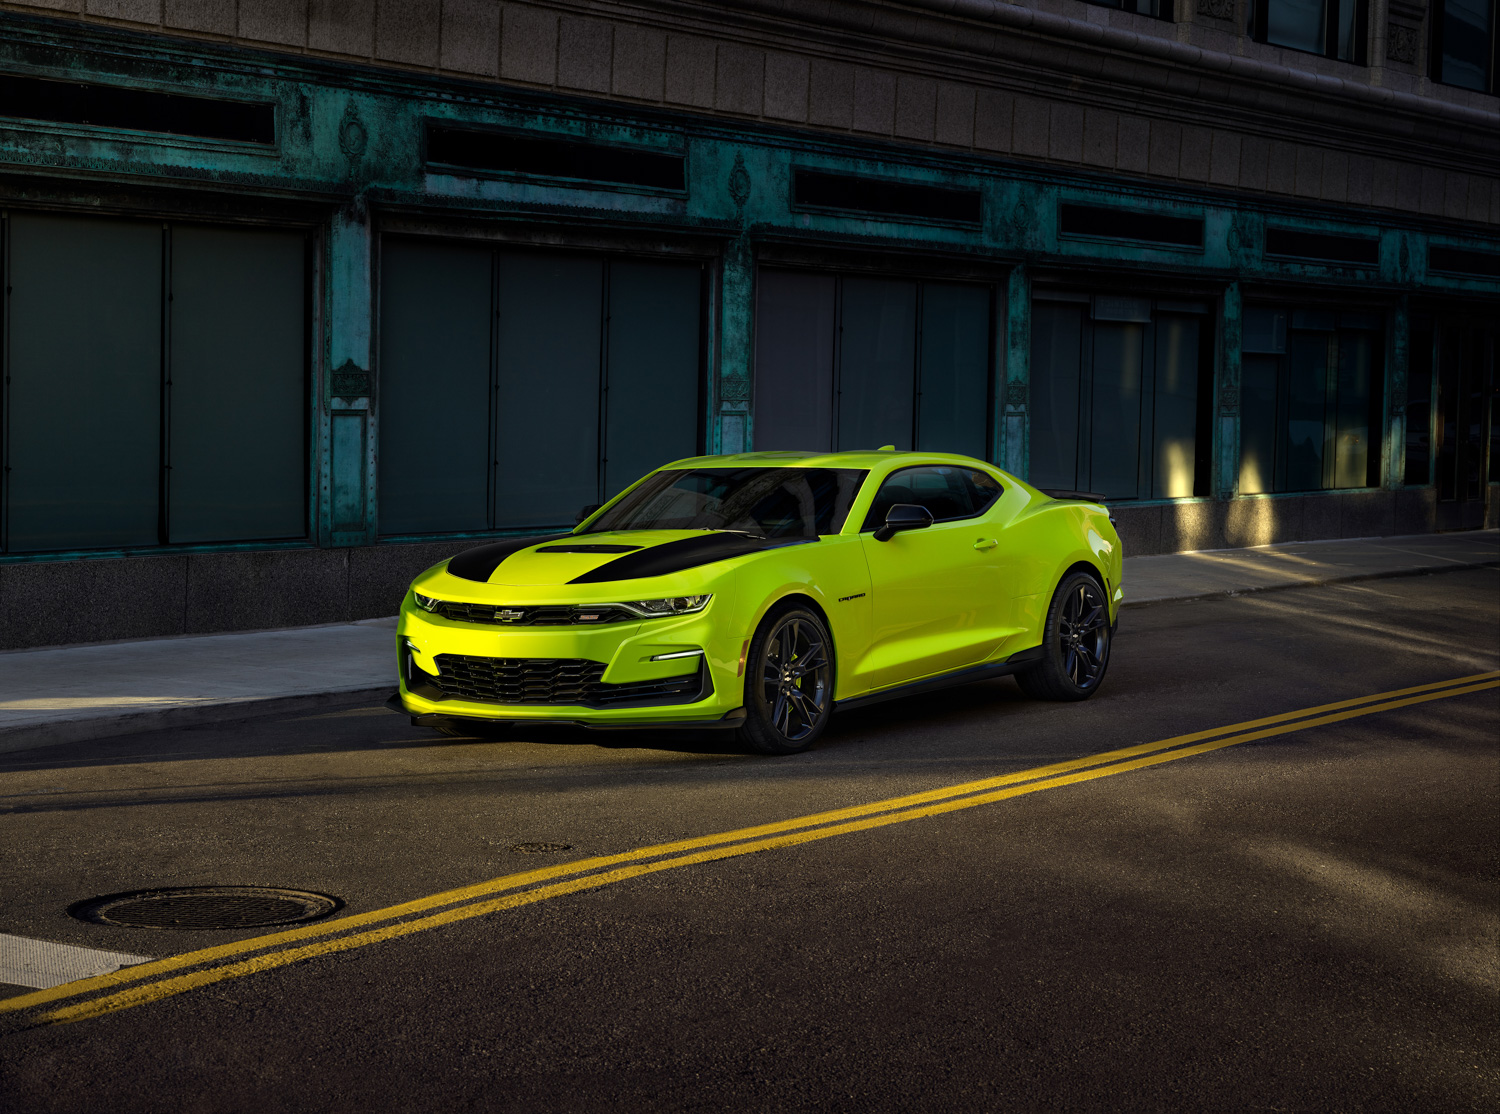 2019 Chevrolet Camaro shock yellow front 3/4